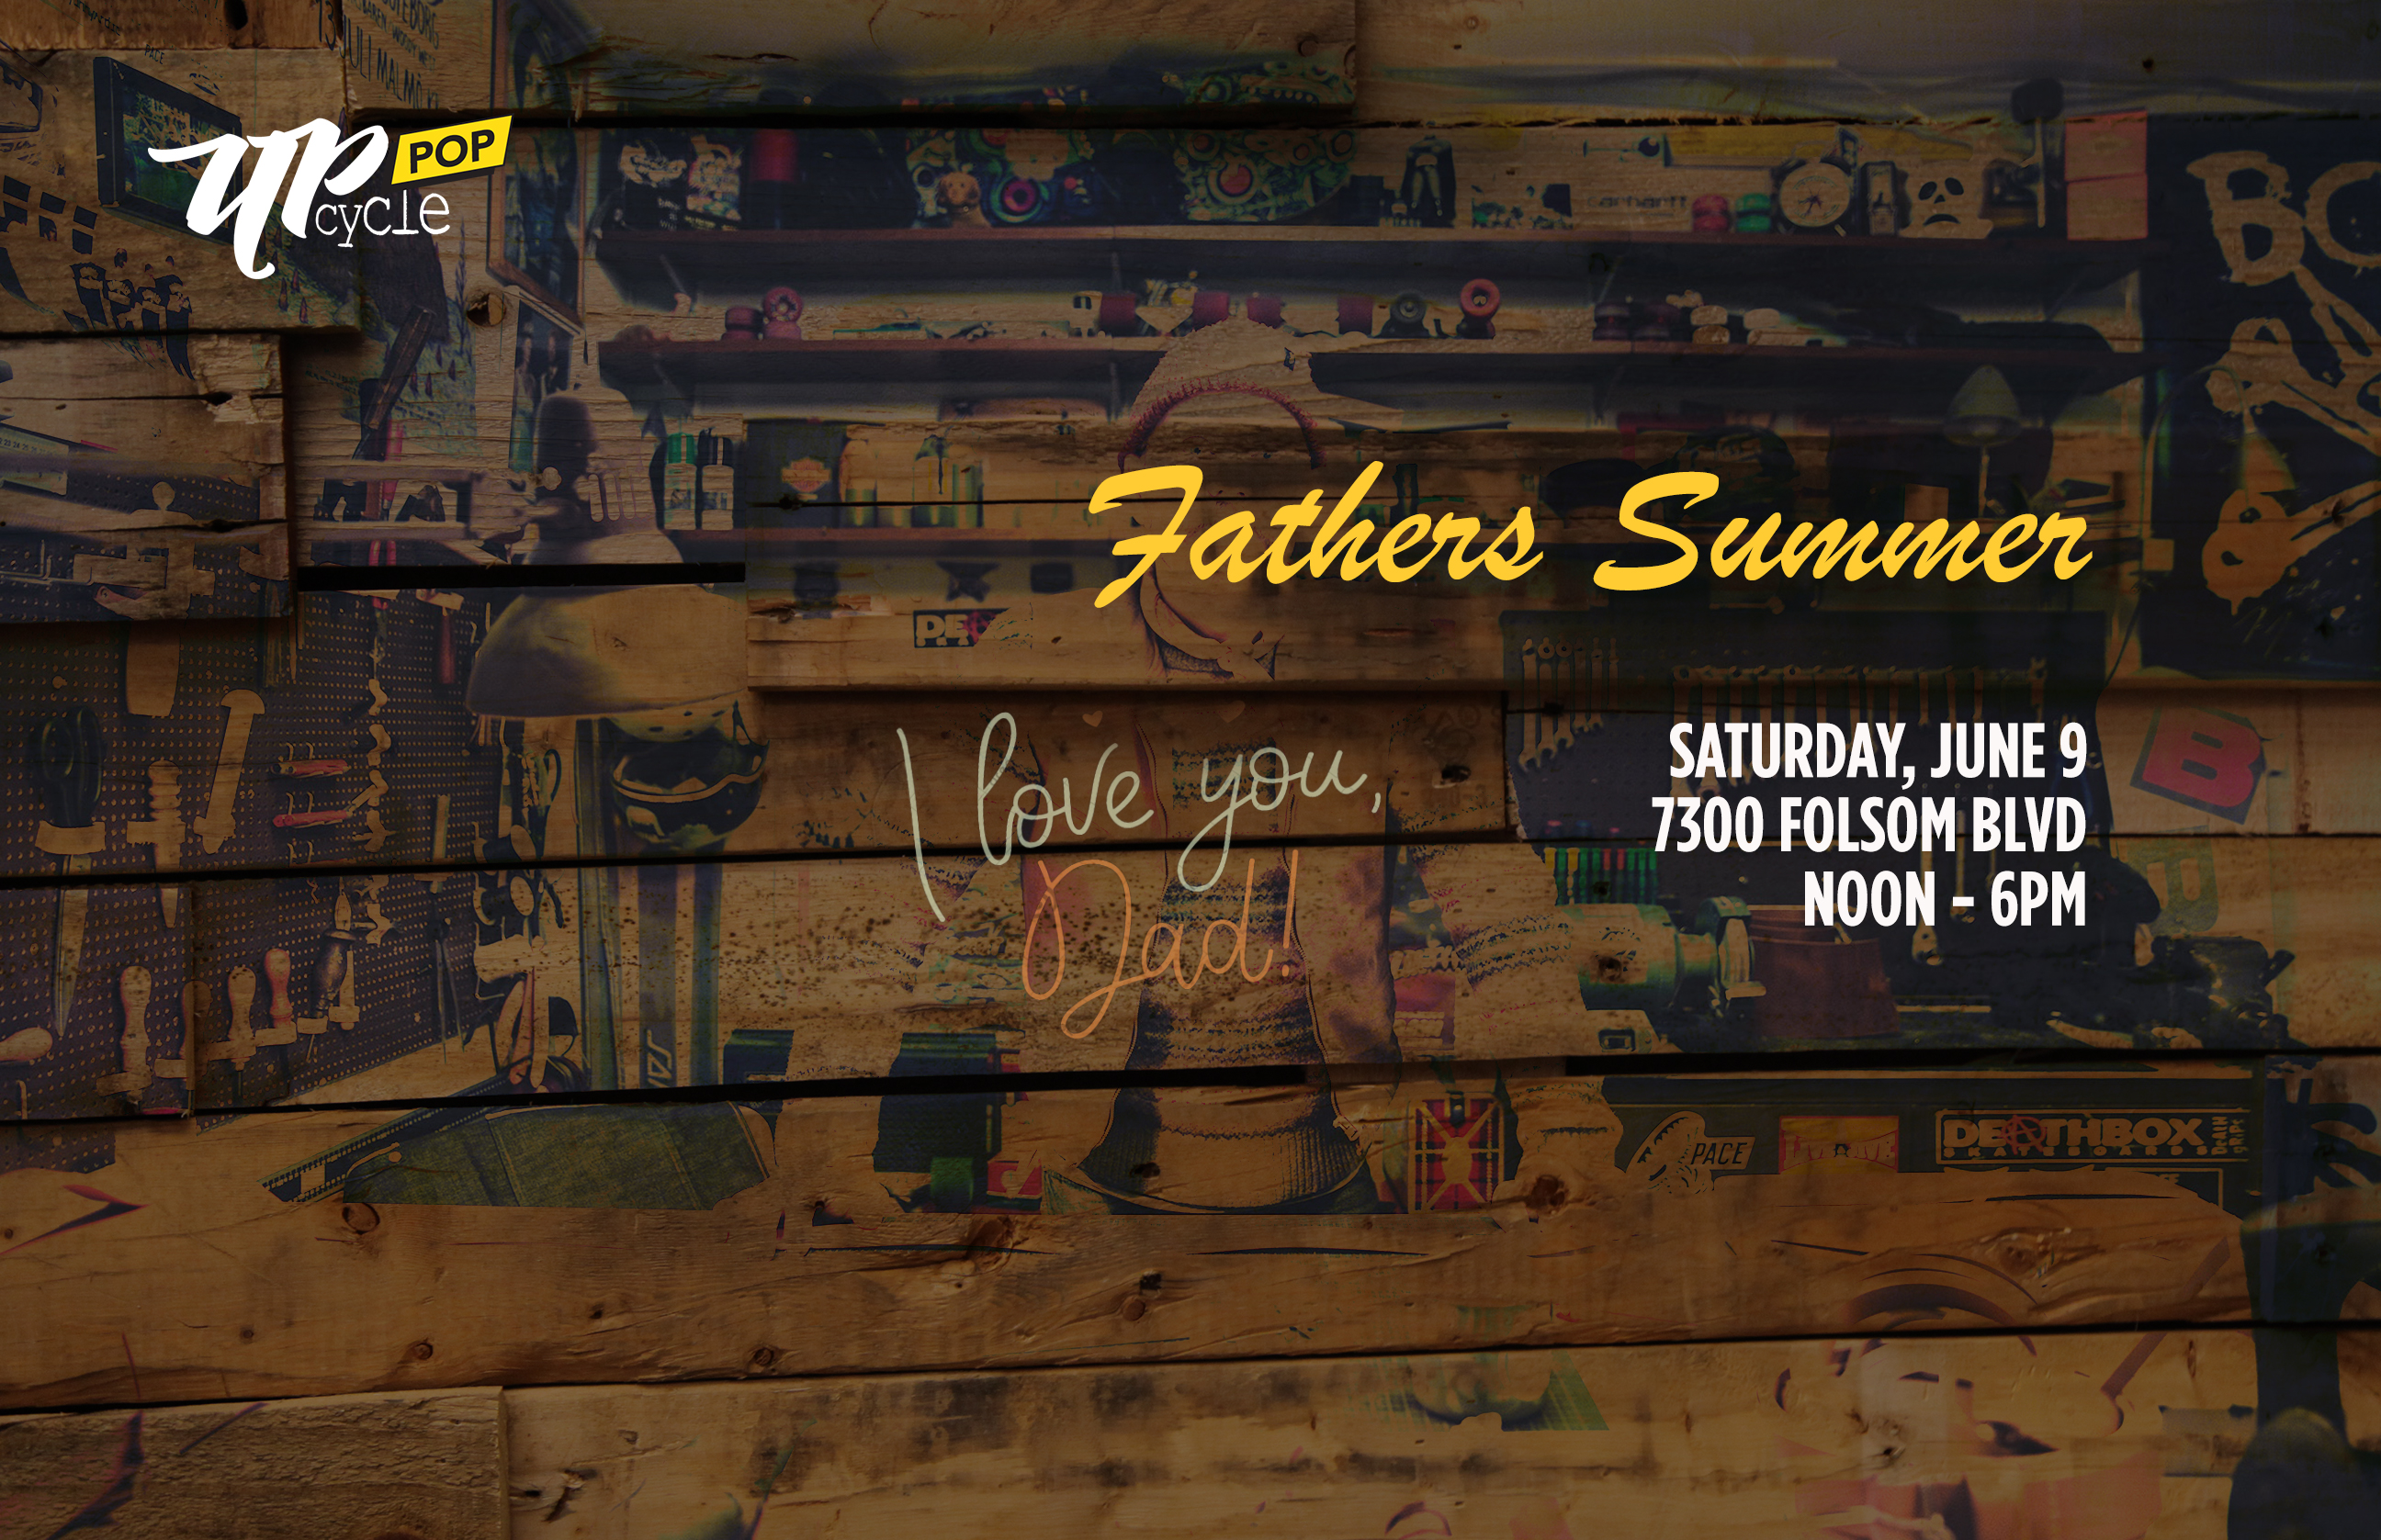 UpcyclePOP Fathers Summer Event